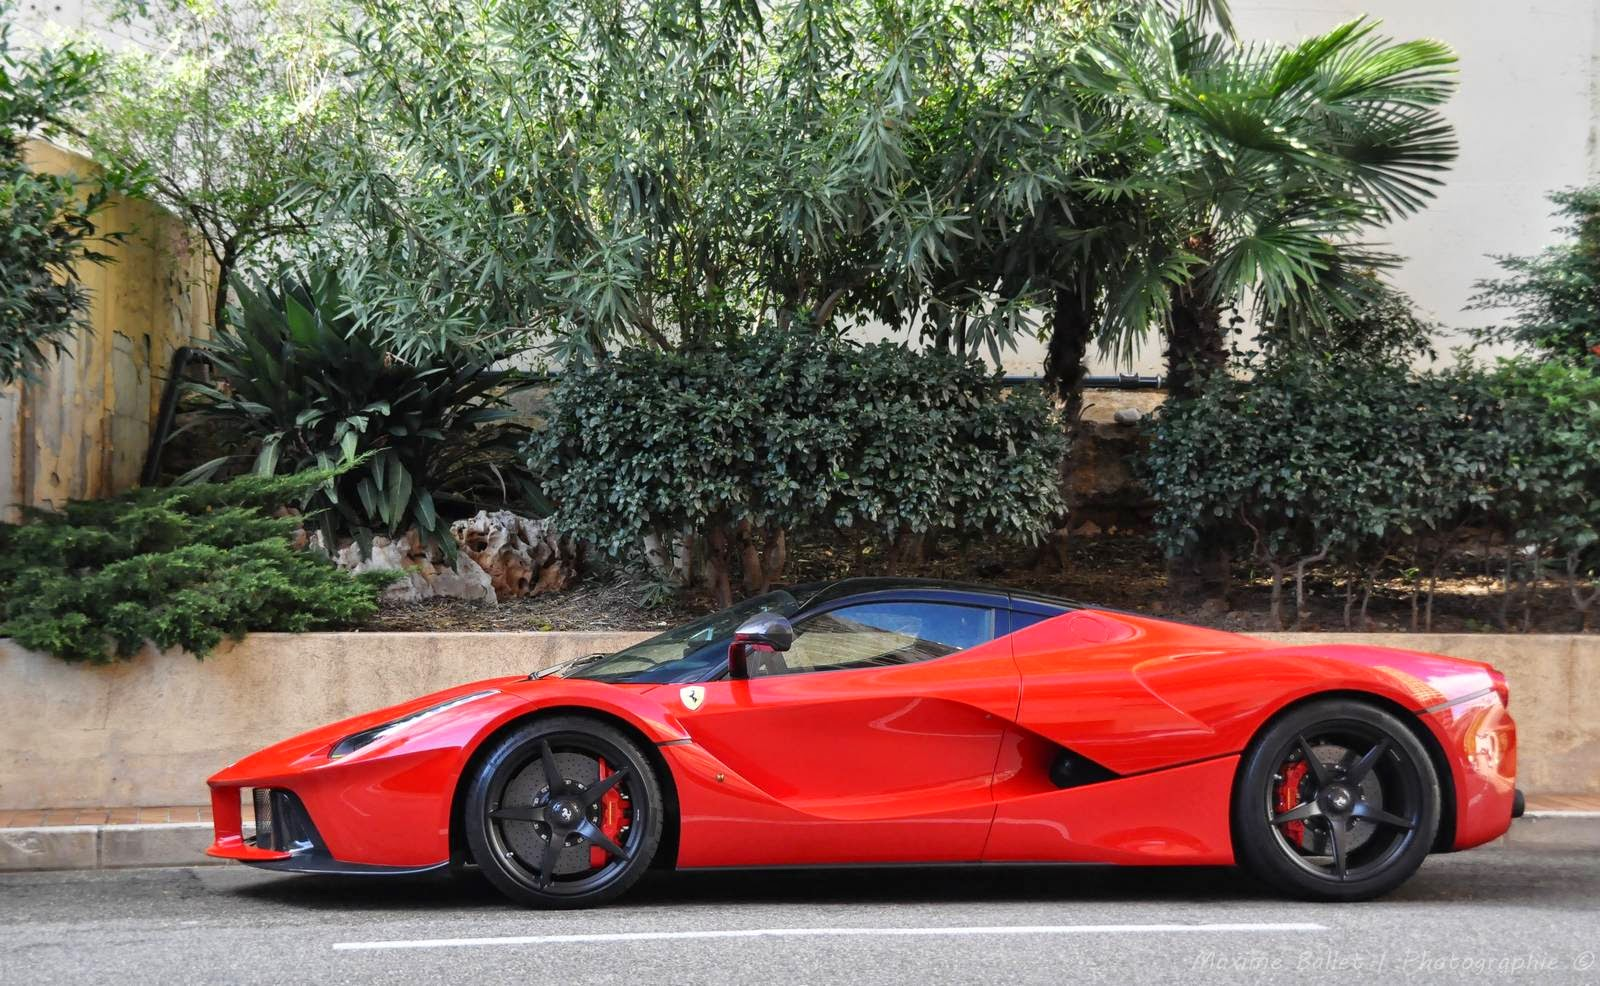 The LaFerrari Is Ferrariu0027s Answer To The Bugatti Supercar And The Mclaren  P1, It Boast 949HP And 663 Lbs/ft Of Torque And Can Achieve A Top Speed Of  Over ...